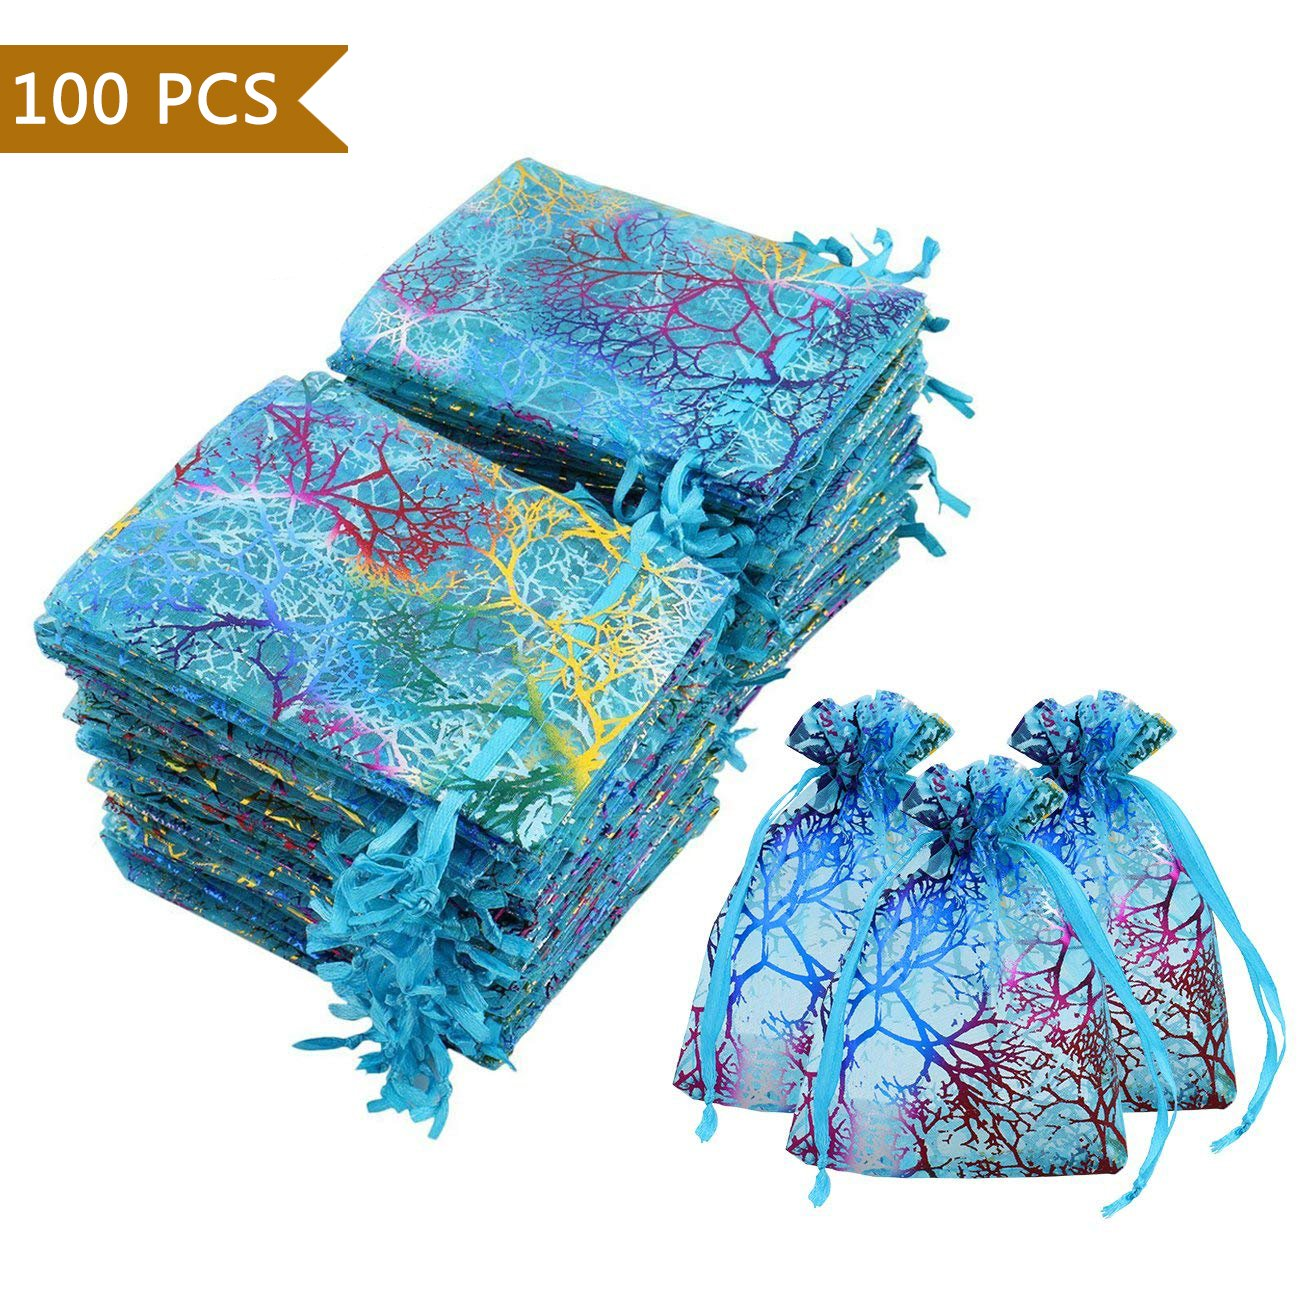 Luxbon 100Pcs Coralline Blue Organza Drawstring Bags Jewelry Pouches Wedding Party Candy Chocolate Christmas Favor Gift Bags 3.35'' X 4.7''